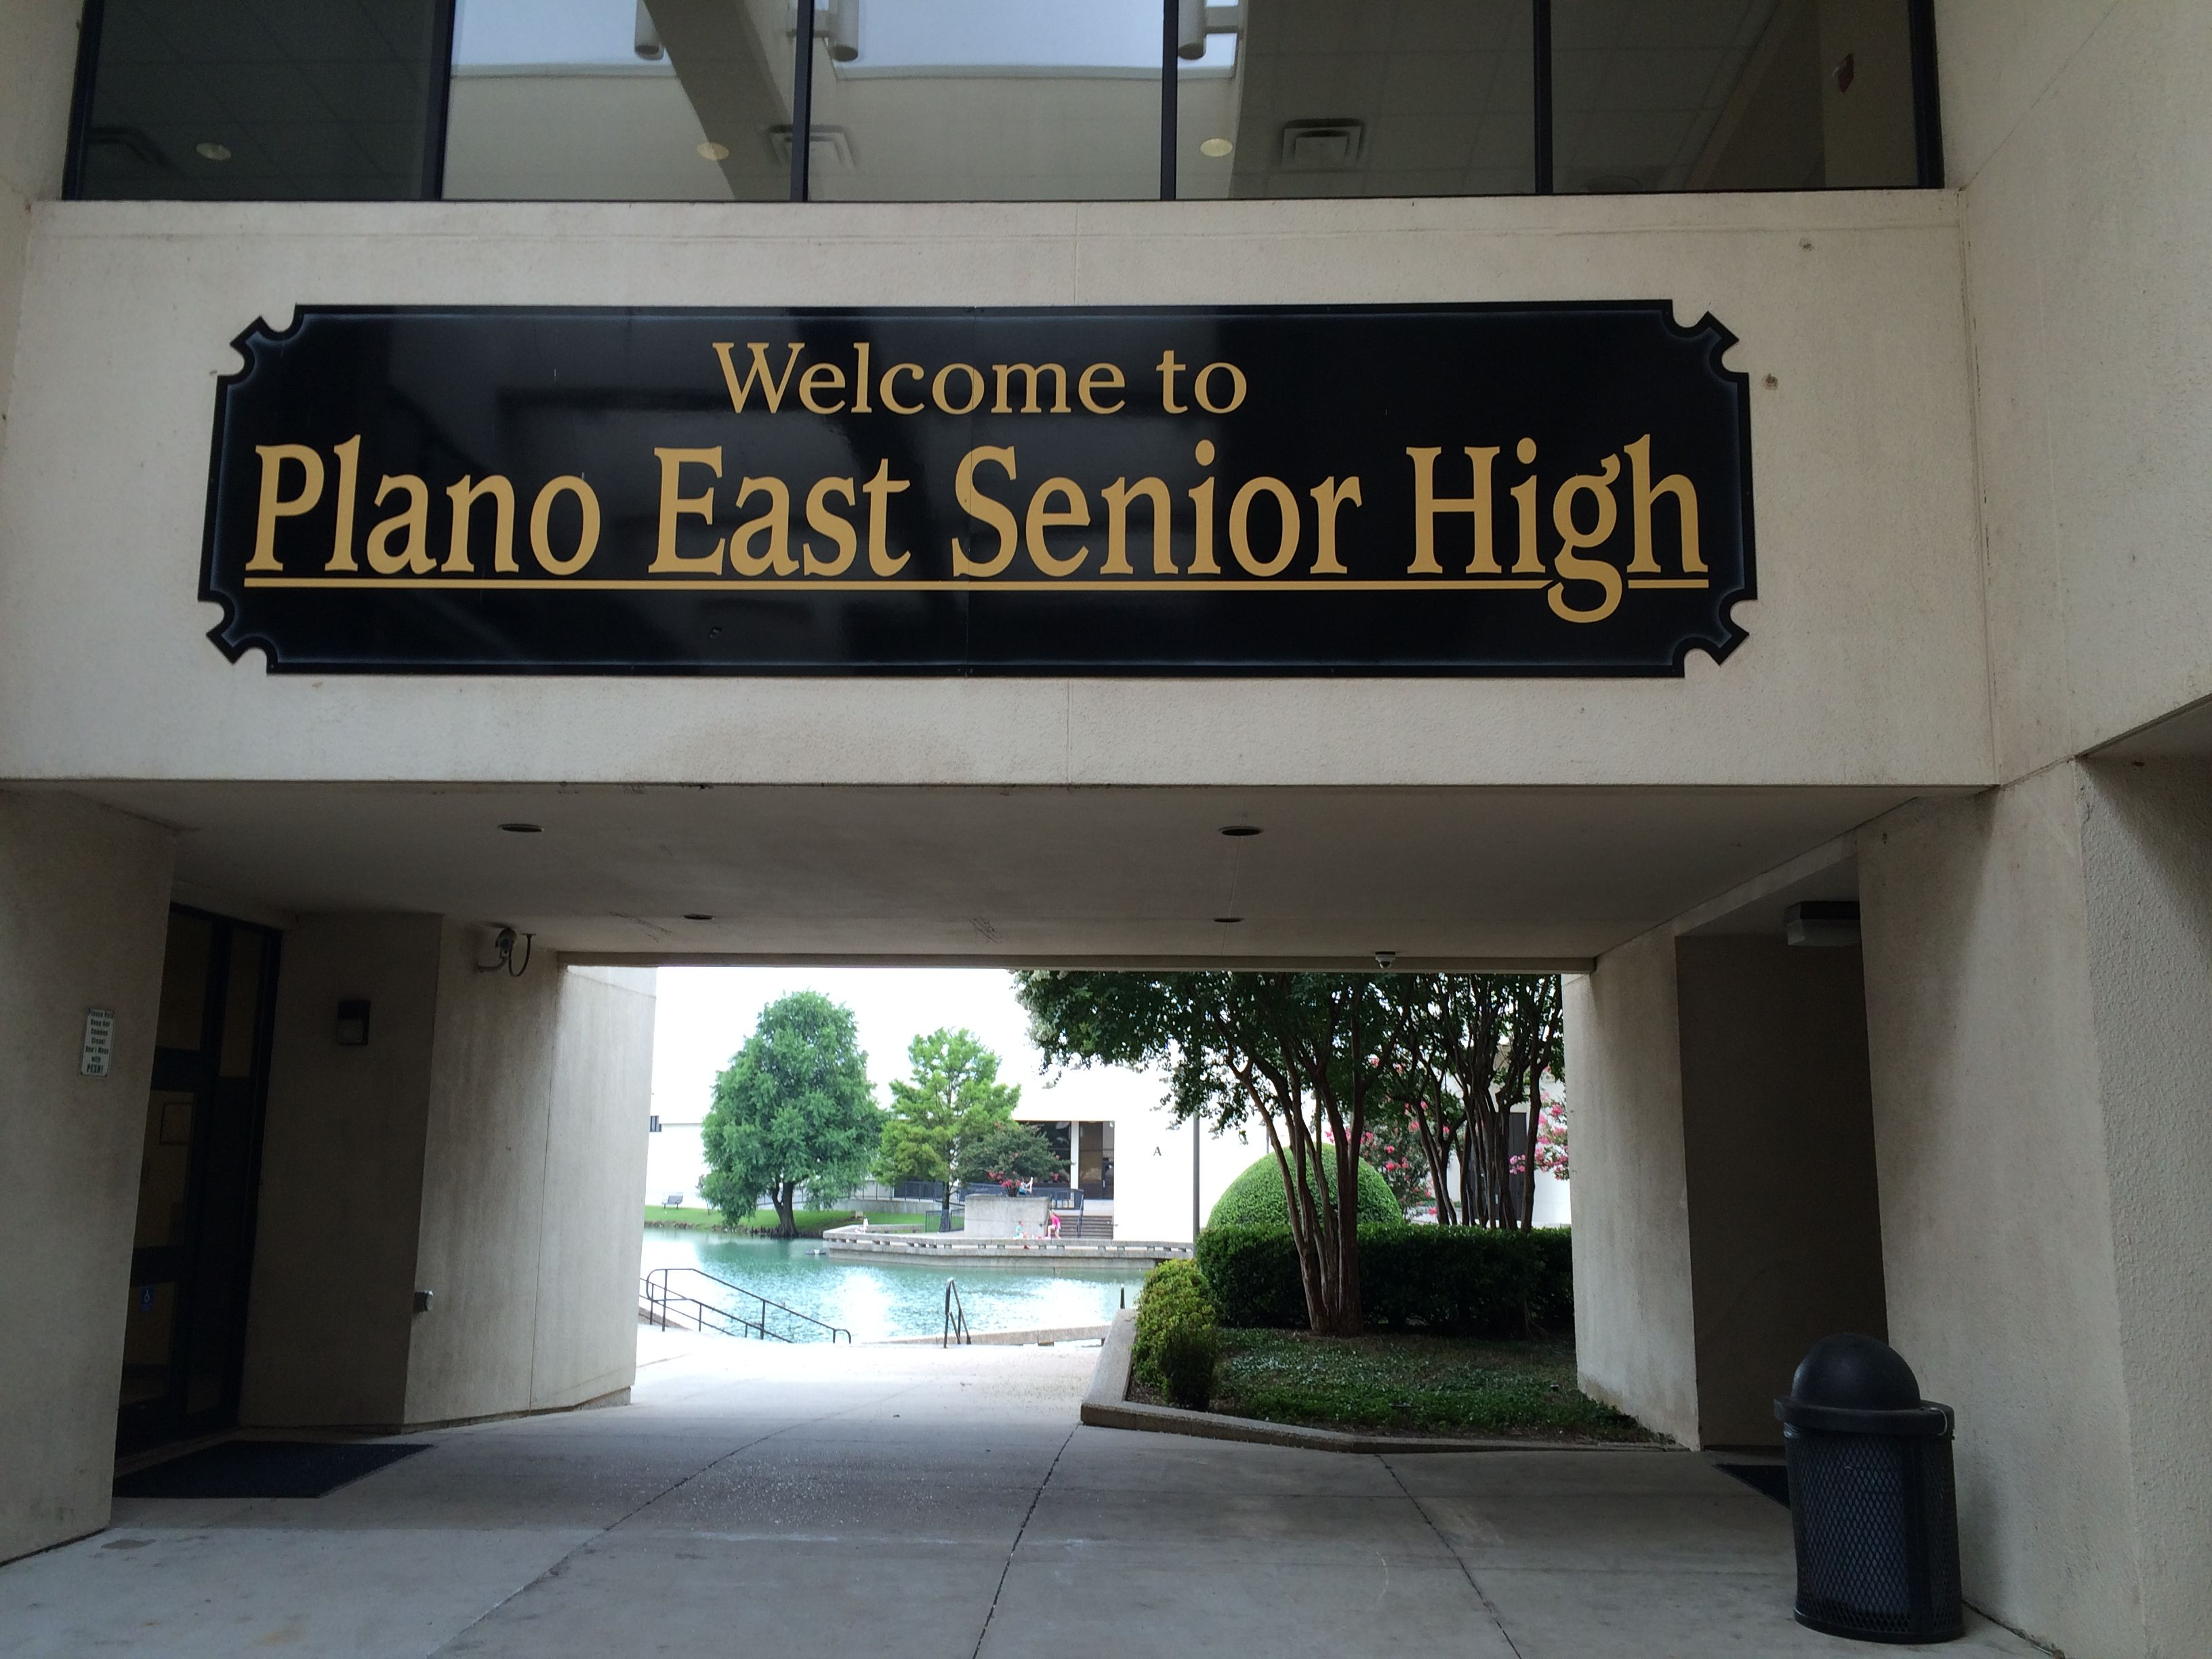 Plano East Senior High School Located At 3000 Los Rios Plano Texas 75074 Is In A Beautiful Area Of The City Of Plano Texas 75093 It Is Surrounded By Rolling